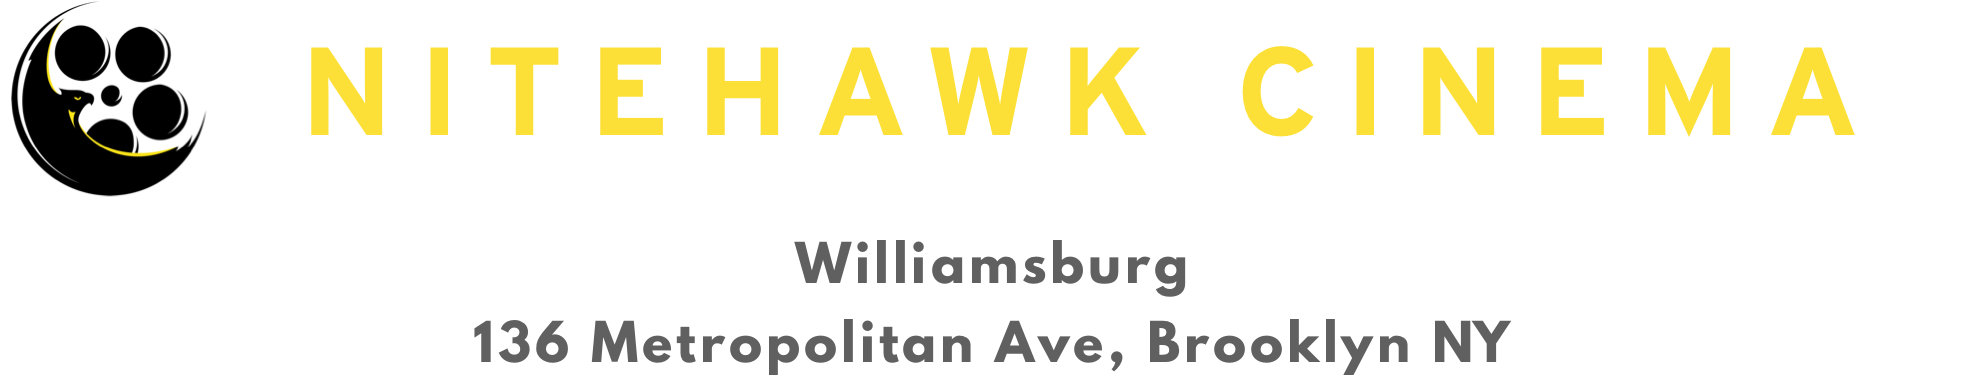 Nitehawk Cinema – Williamsburg